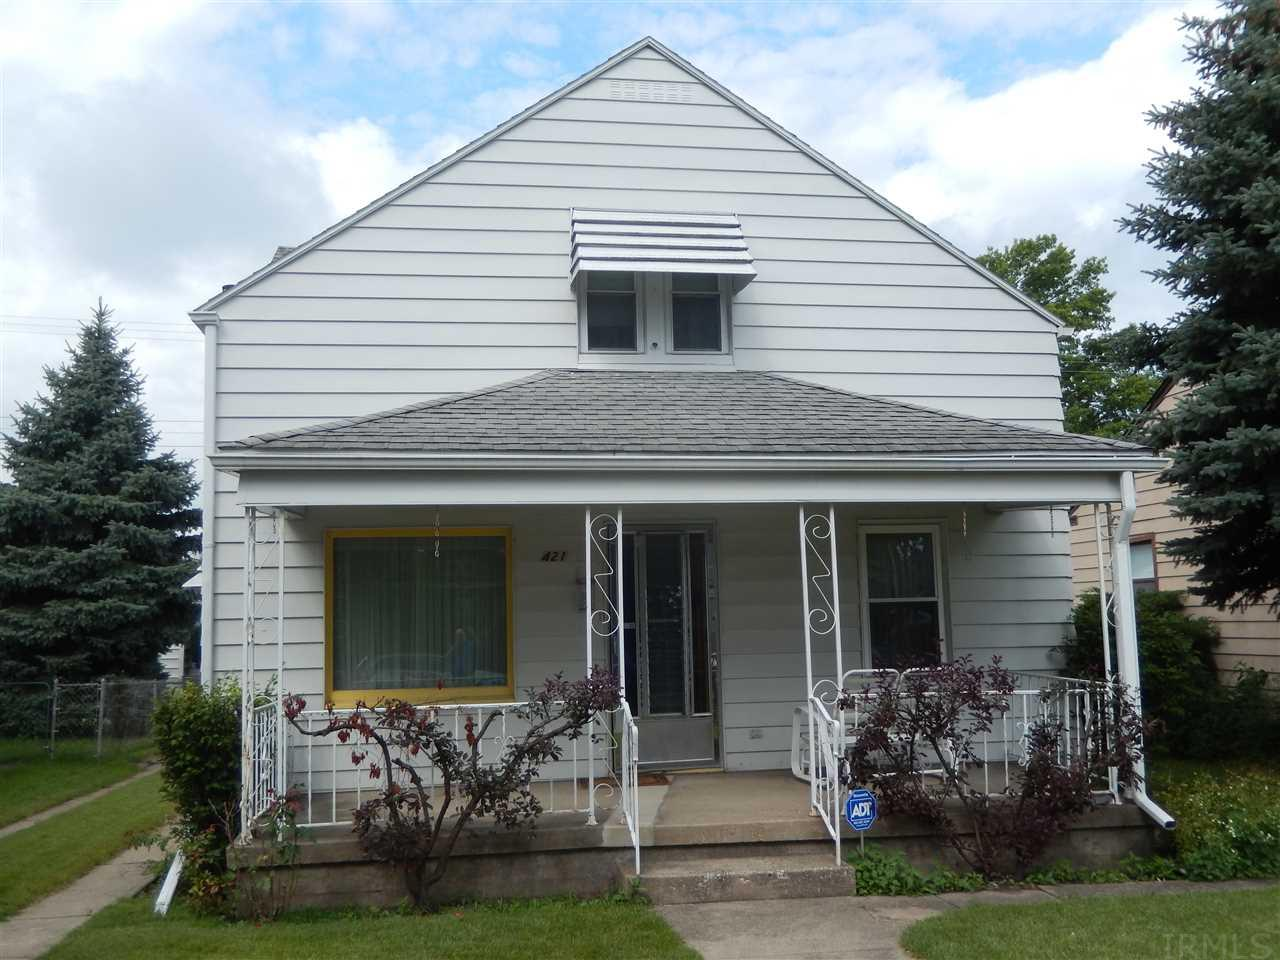 421 S Gladstone, South Bend, IN 46619